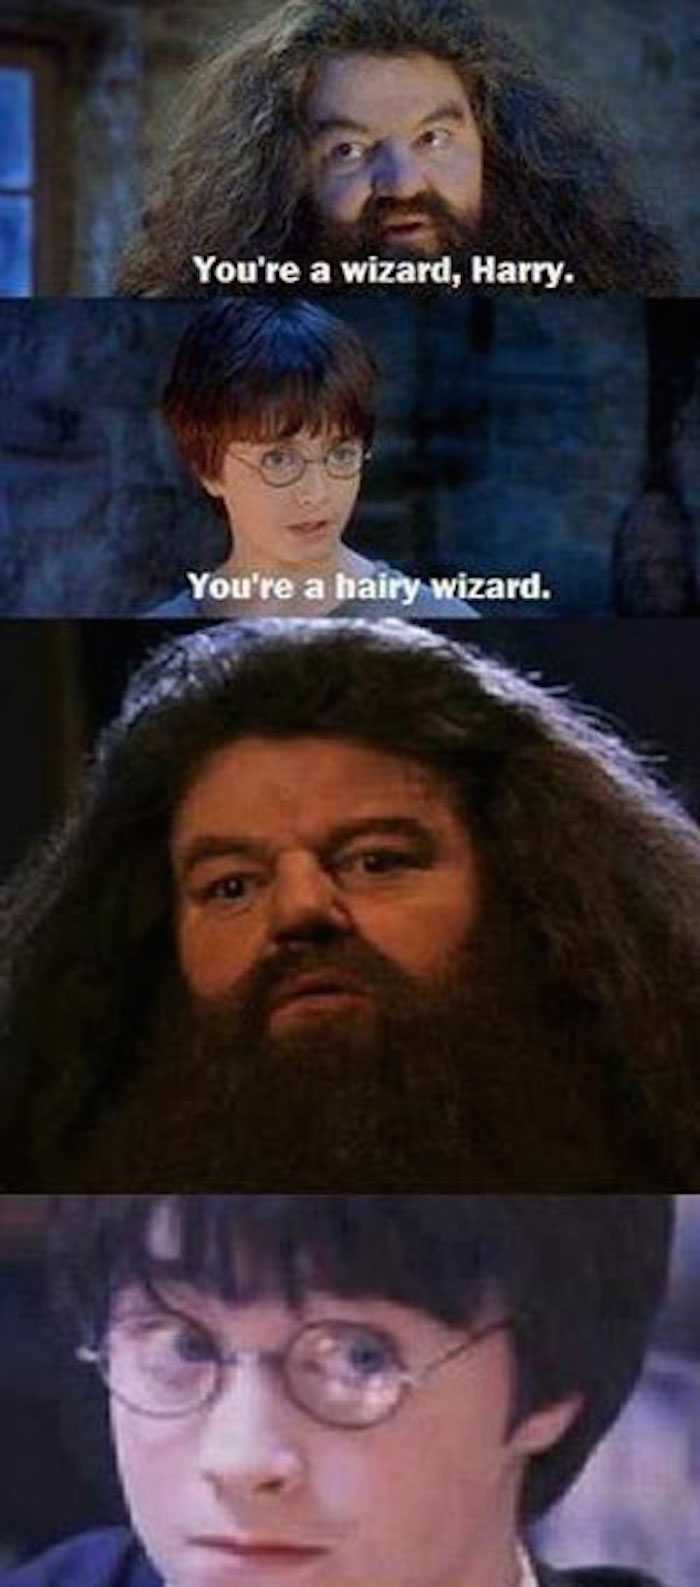 harry potter memes hairy wizard 38jofu 35 magical memes to celebrate harry potter's 20th anniversary